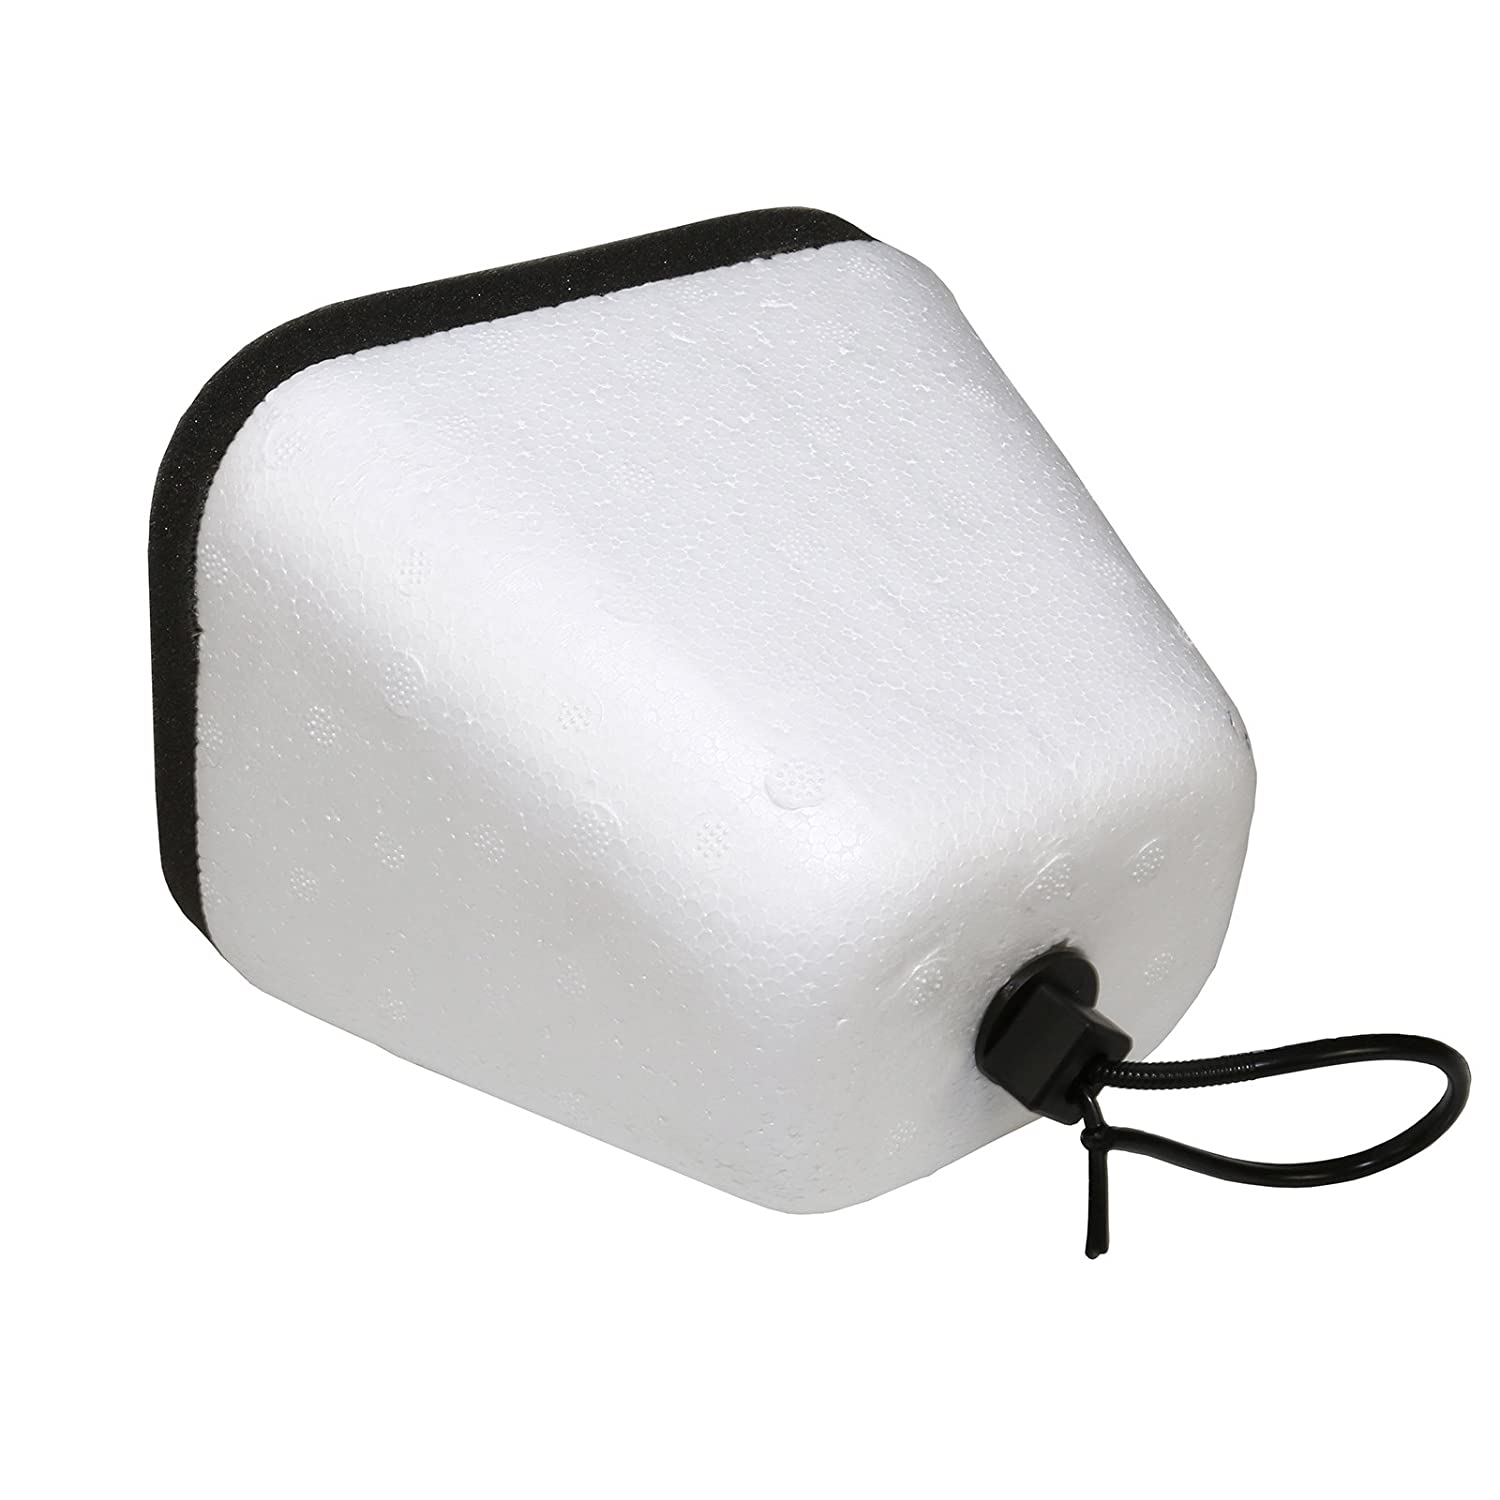 4YourHome Outdoor Garden Tap Cover Thermal Frost Winter Protector Jacket Insulated